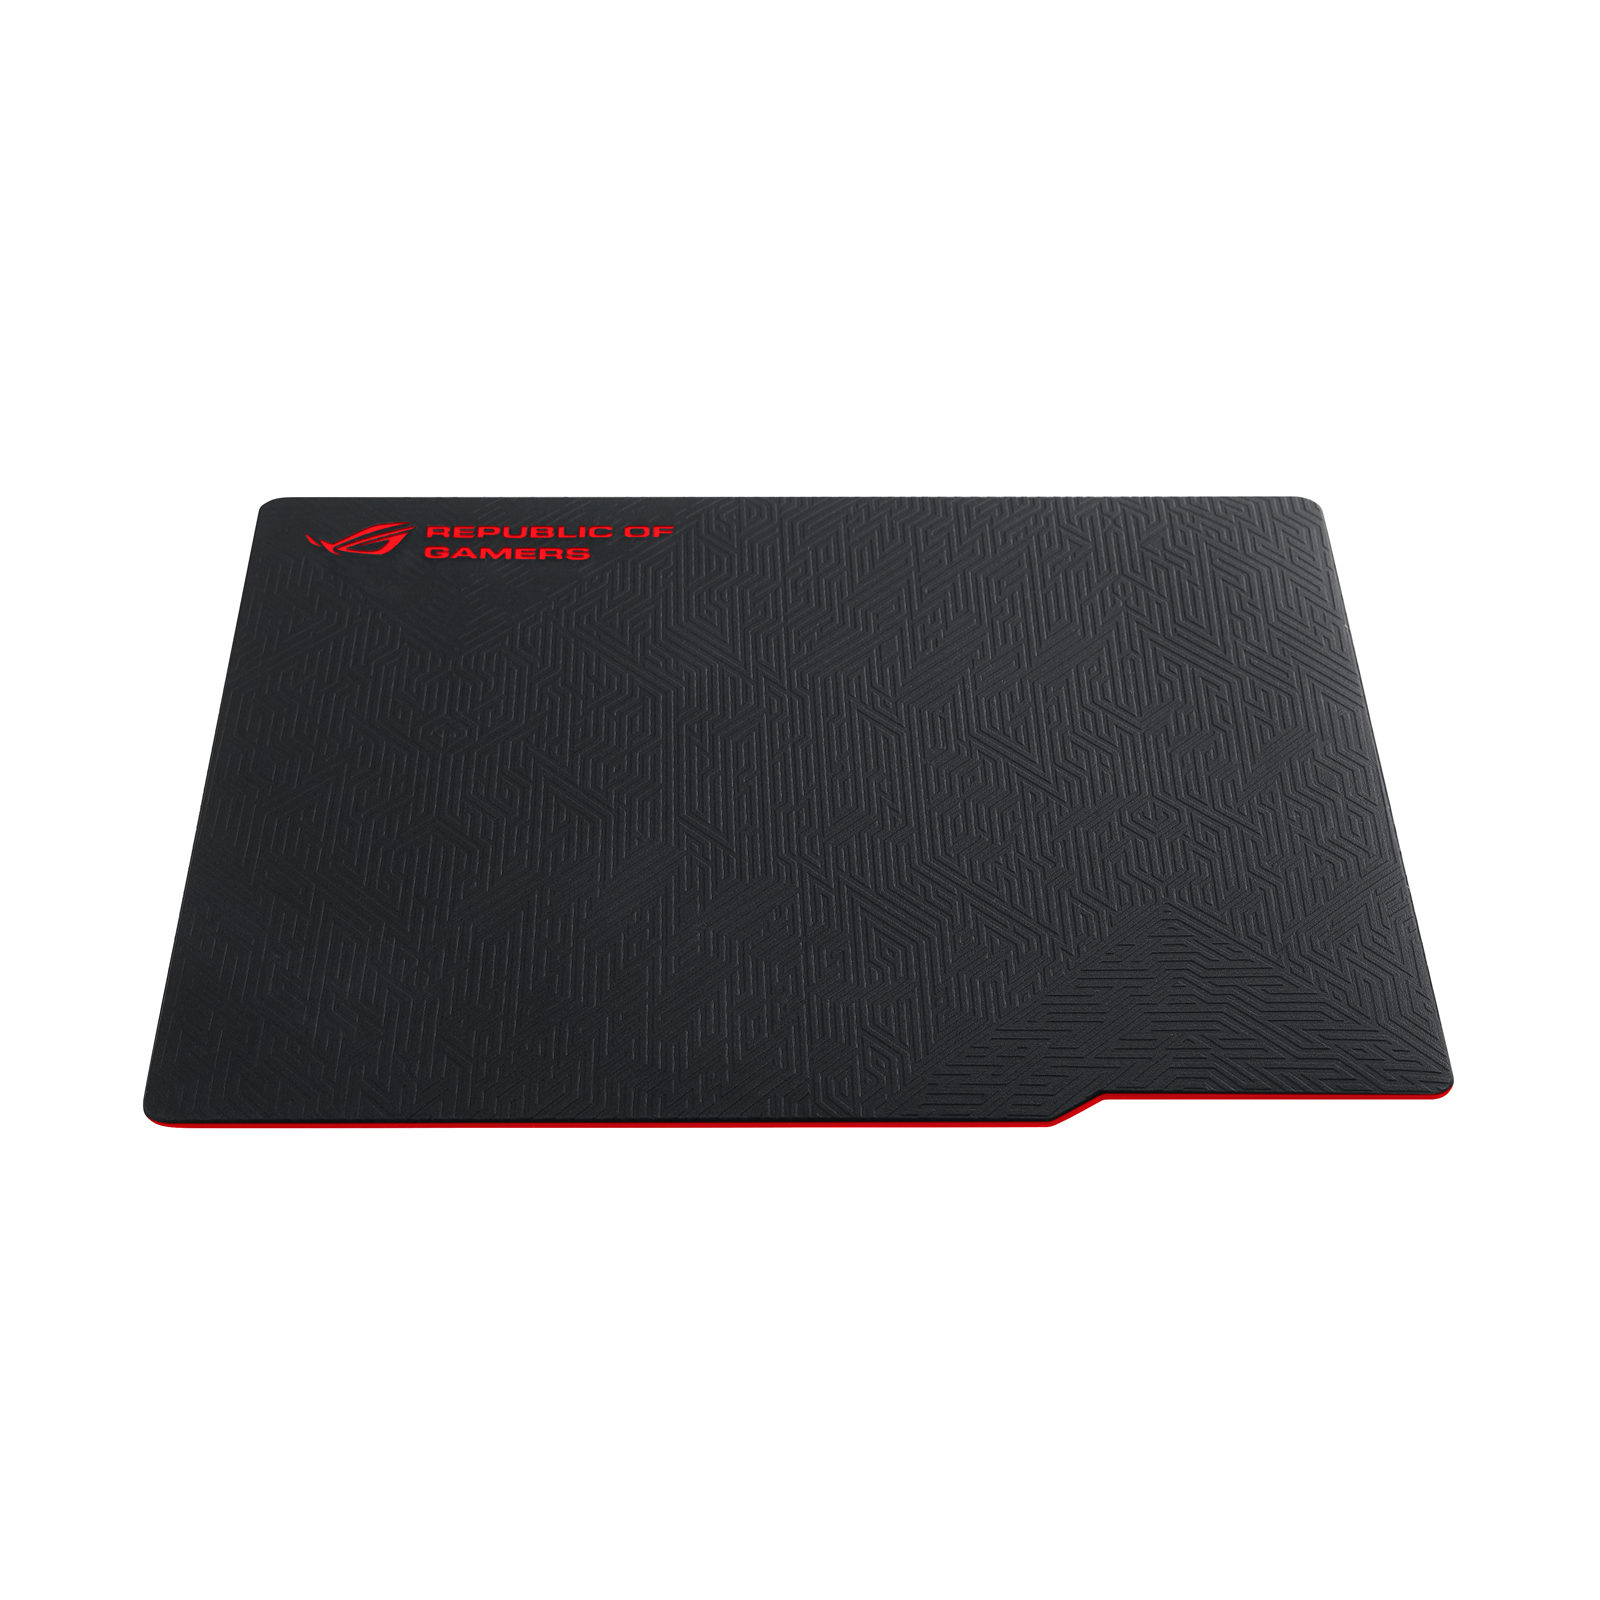 asus rog whetstone tapis de souris asus sur. Black Bedroom Furniture Sets. Home Design Ideas